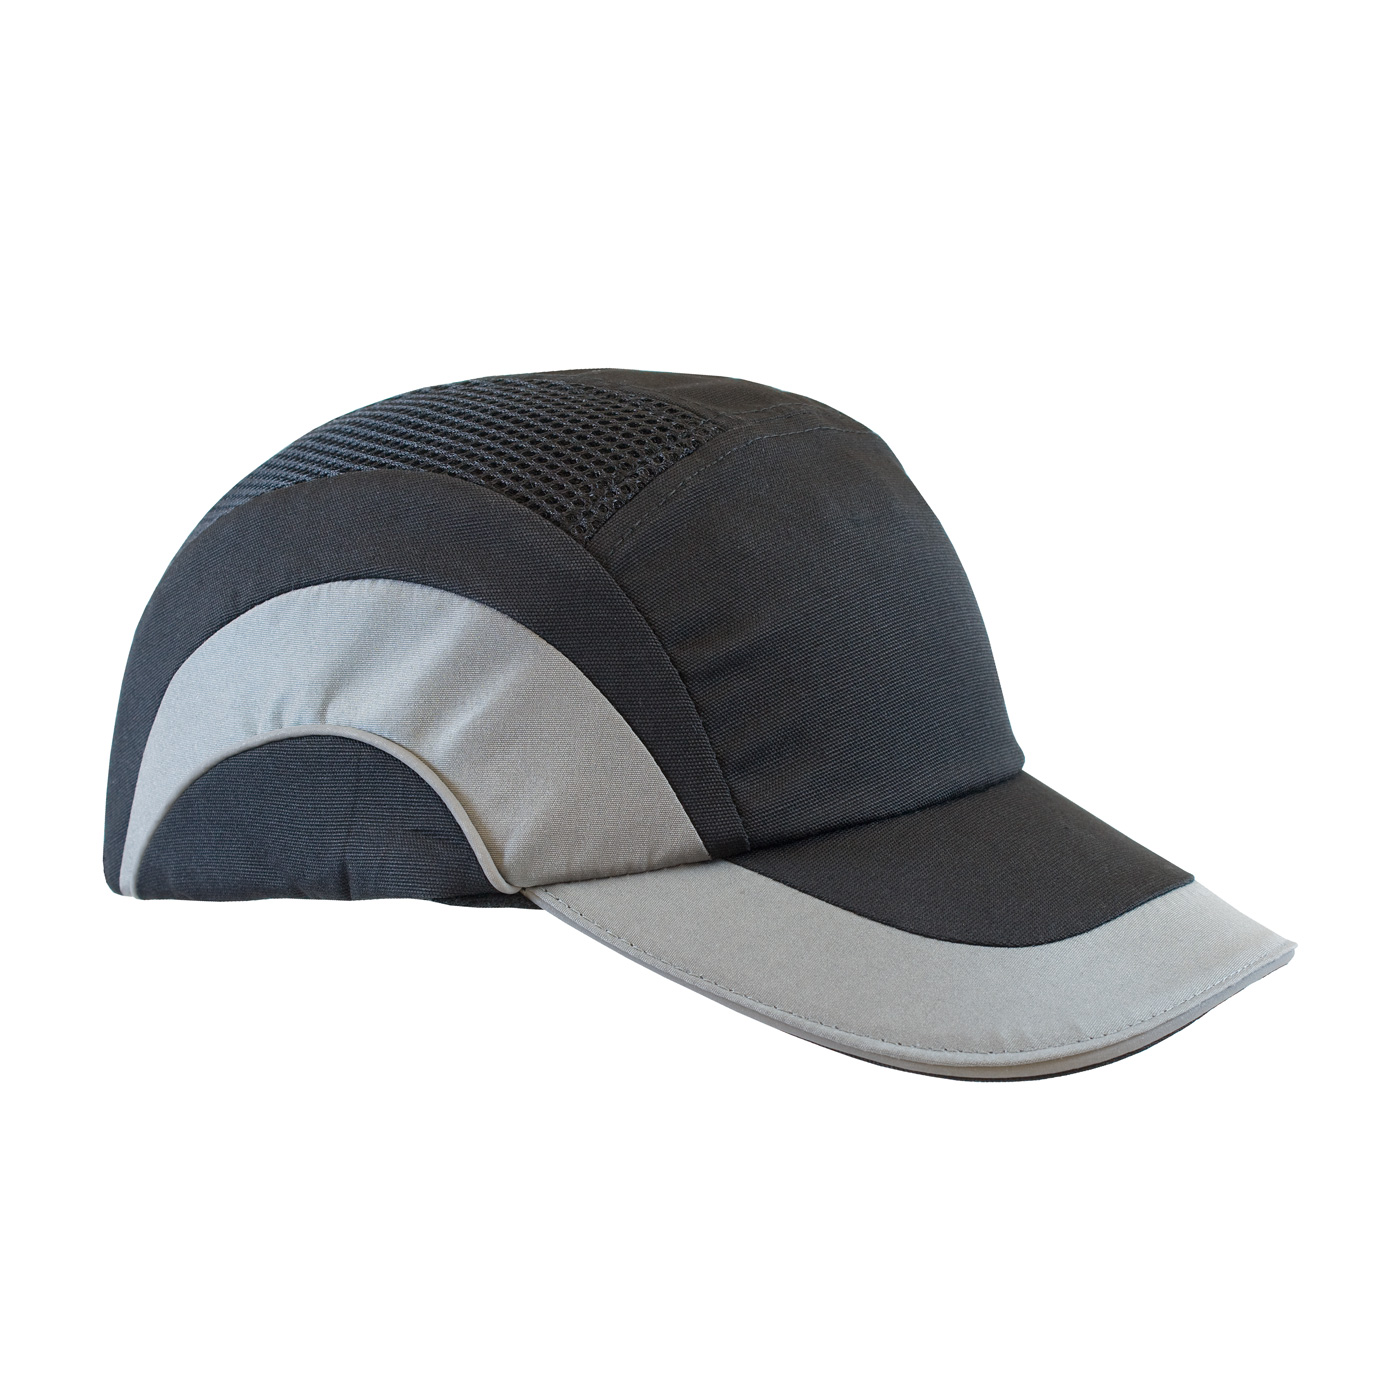 Baseball Style Bump Cap with HDPE Protective Liner and Adjustable Back, Gray, OS